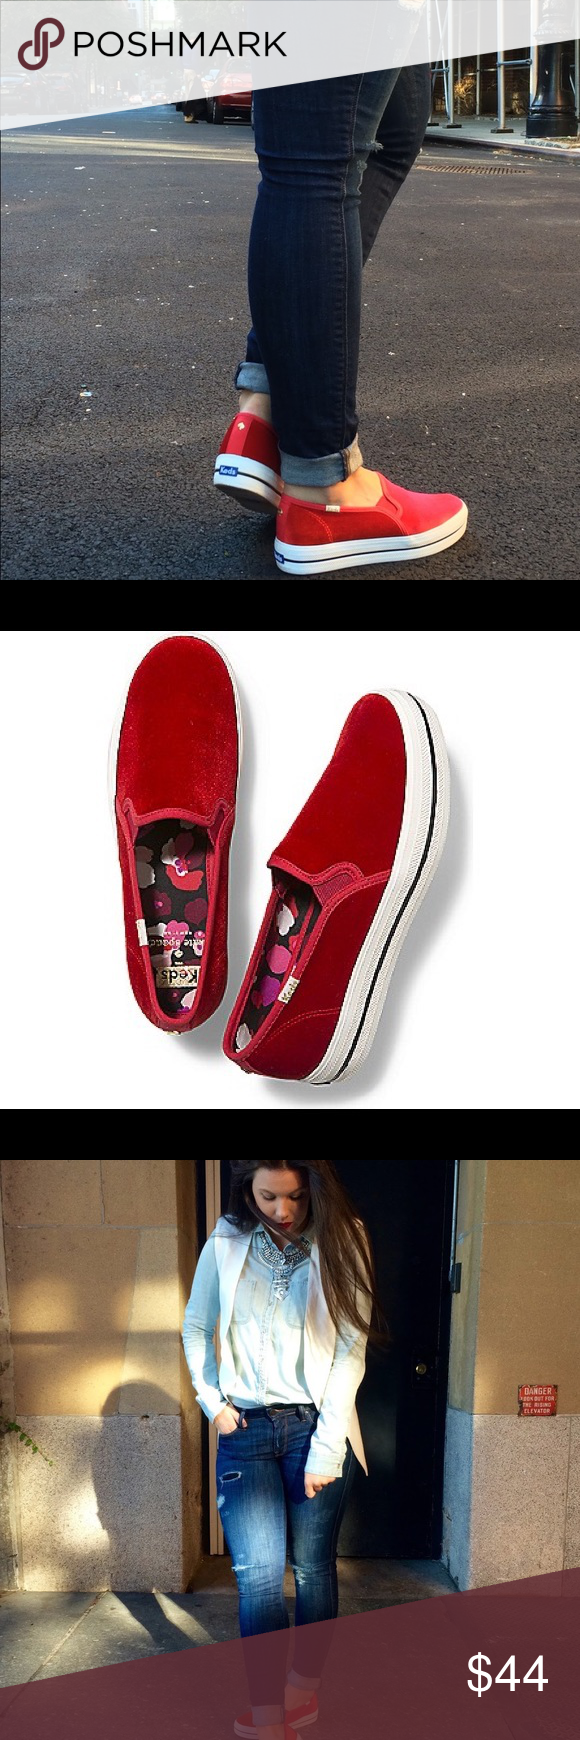 aca8ff4654fb ✨Kate Spade For Keds Red Velvet Slip On Sneakers✨ Beautiful and super  stylish Kate